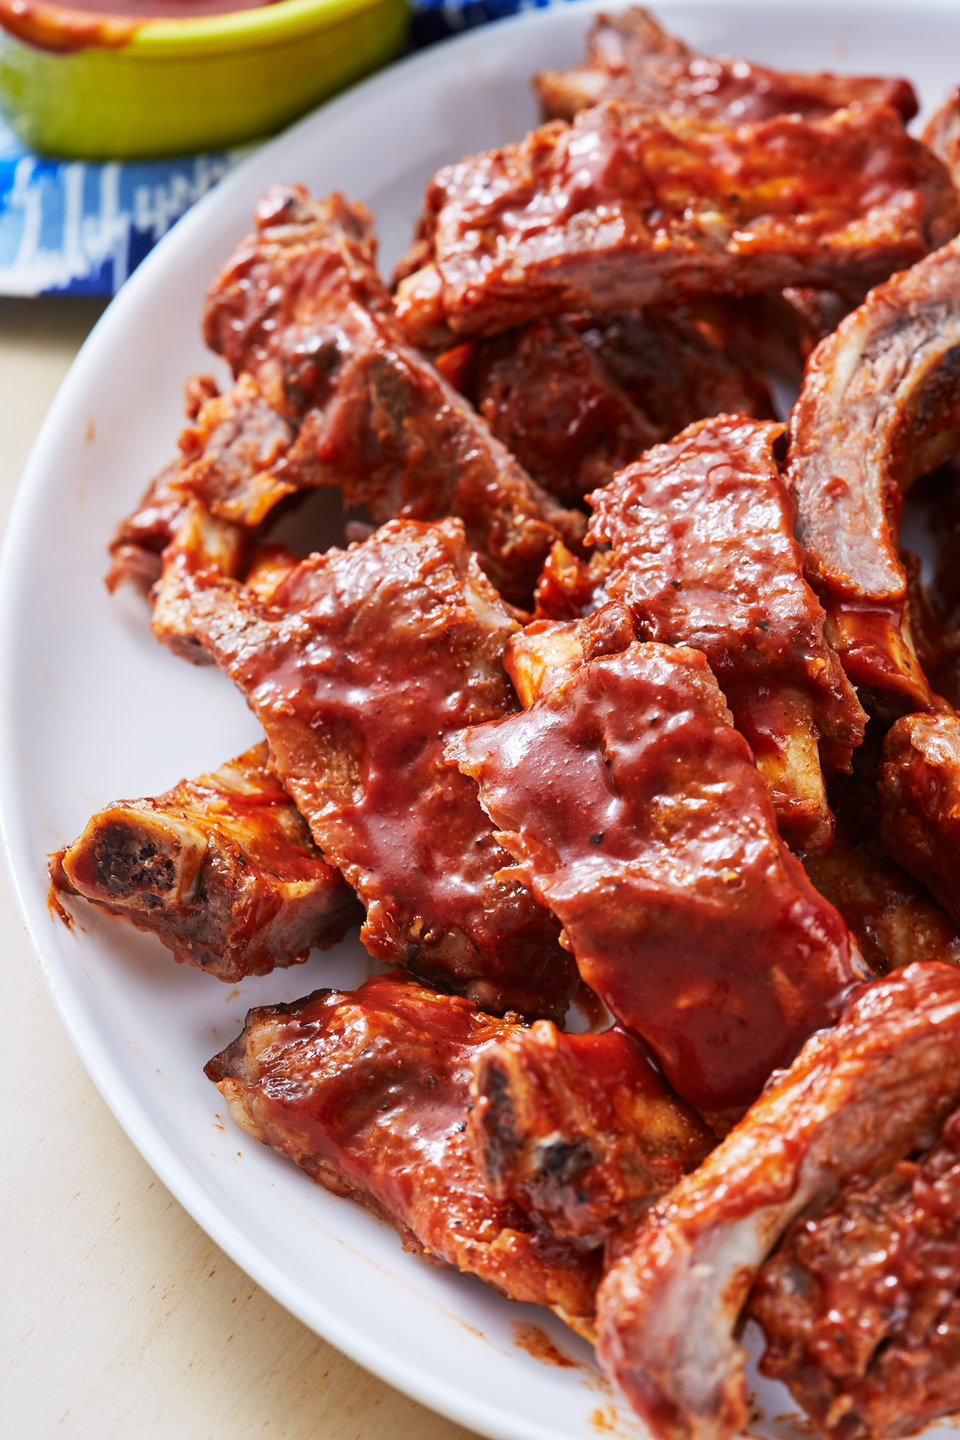 "<p>We're throwing the ""low-and-slow"" theory out the window! All you need for perfect ribs is an Instant Pot and 20 minutes. </p><p>Get the recipe from <a href=""https://www.delish.com/cooking/recipe-ideas/a27044004/instant-pot-ribs-recipe/"" rel=""nofollow noopener"" target=""_blank"" data-ylk=""slk:Delish"" class=""link rapid-noclick-resp"">Delish</a>.</p>"